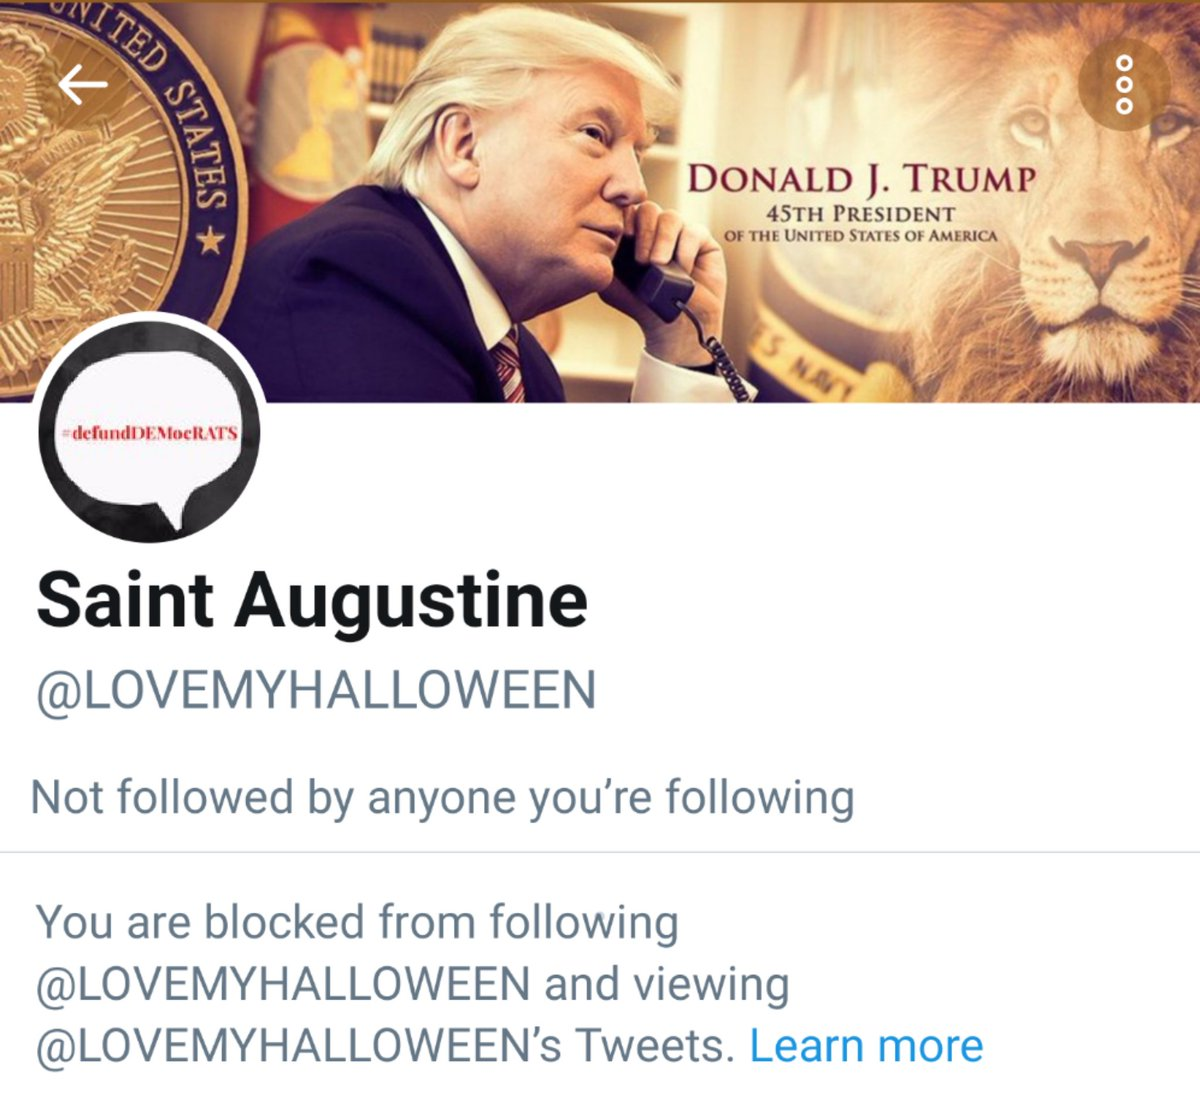 Coward responds to my Tweet and then blocks me. But look how dumb -- they're still looking forward to an election long lost. #Deplorable #coward #TrumpCult #TrumpLost #ByeDon